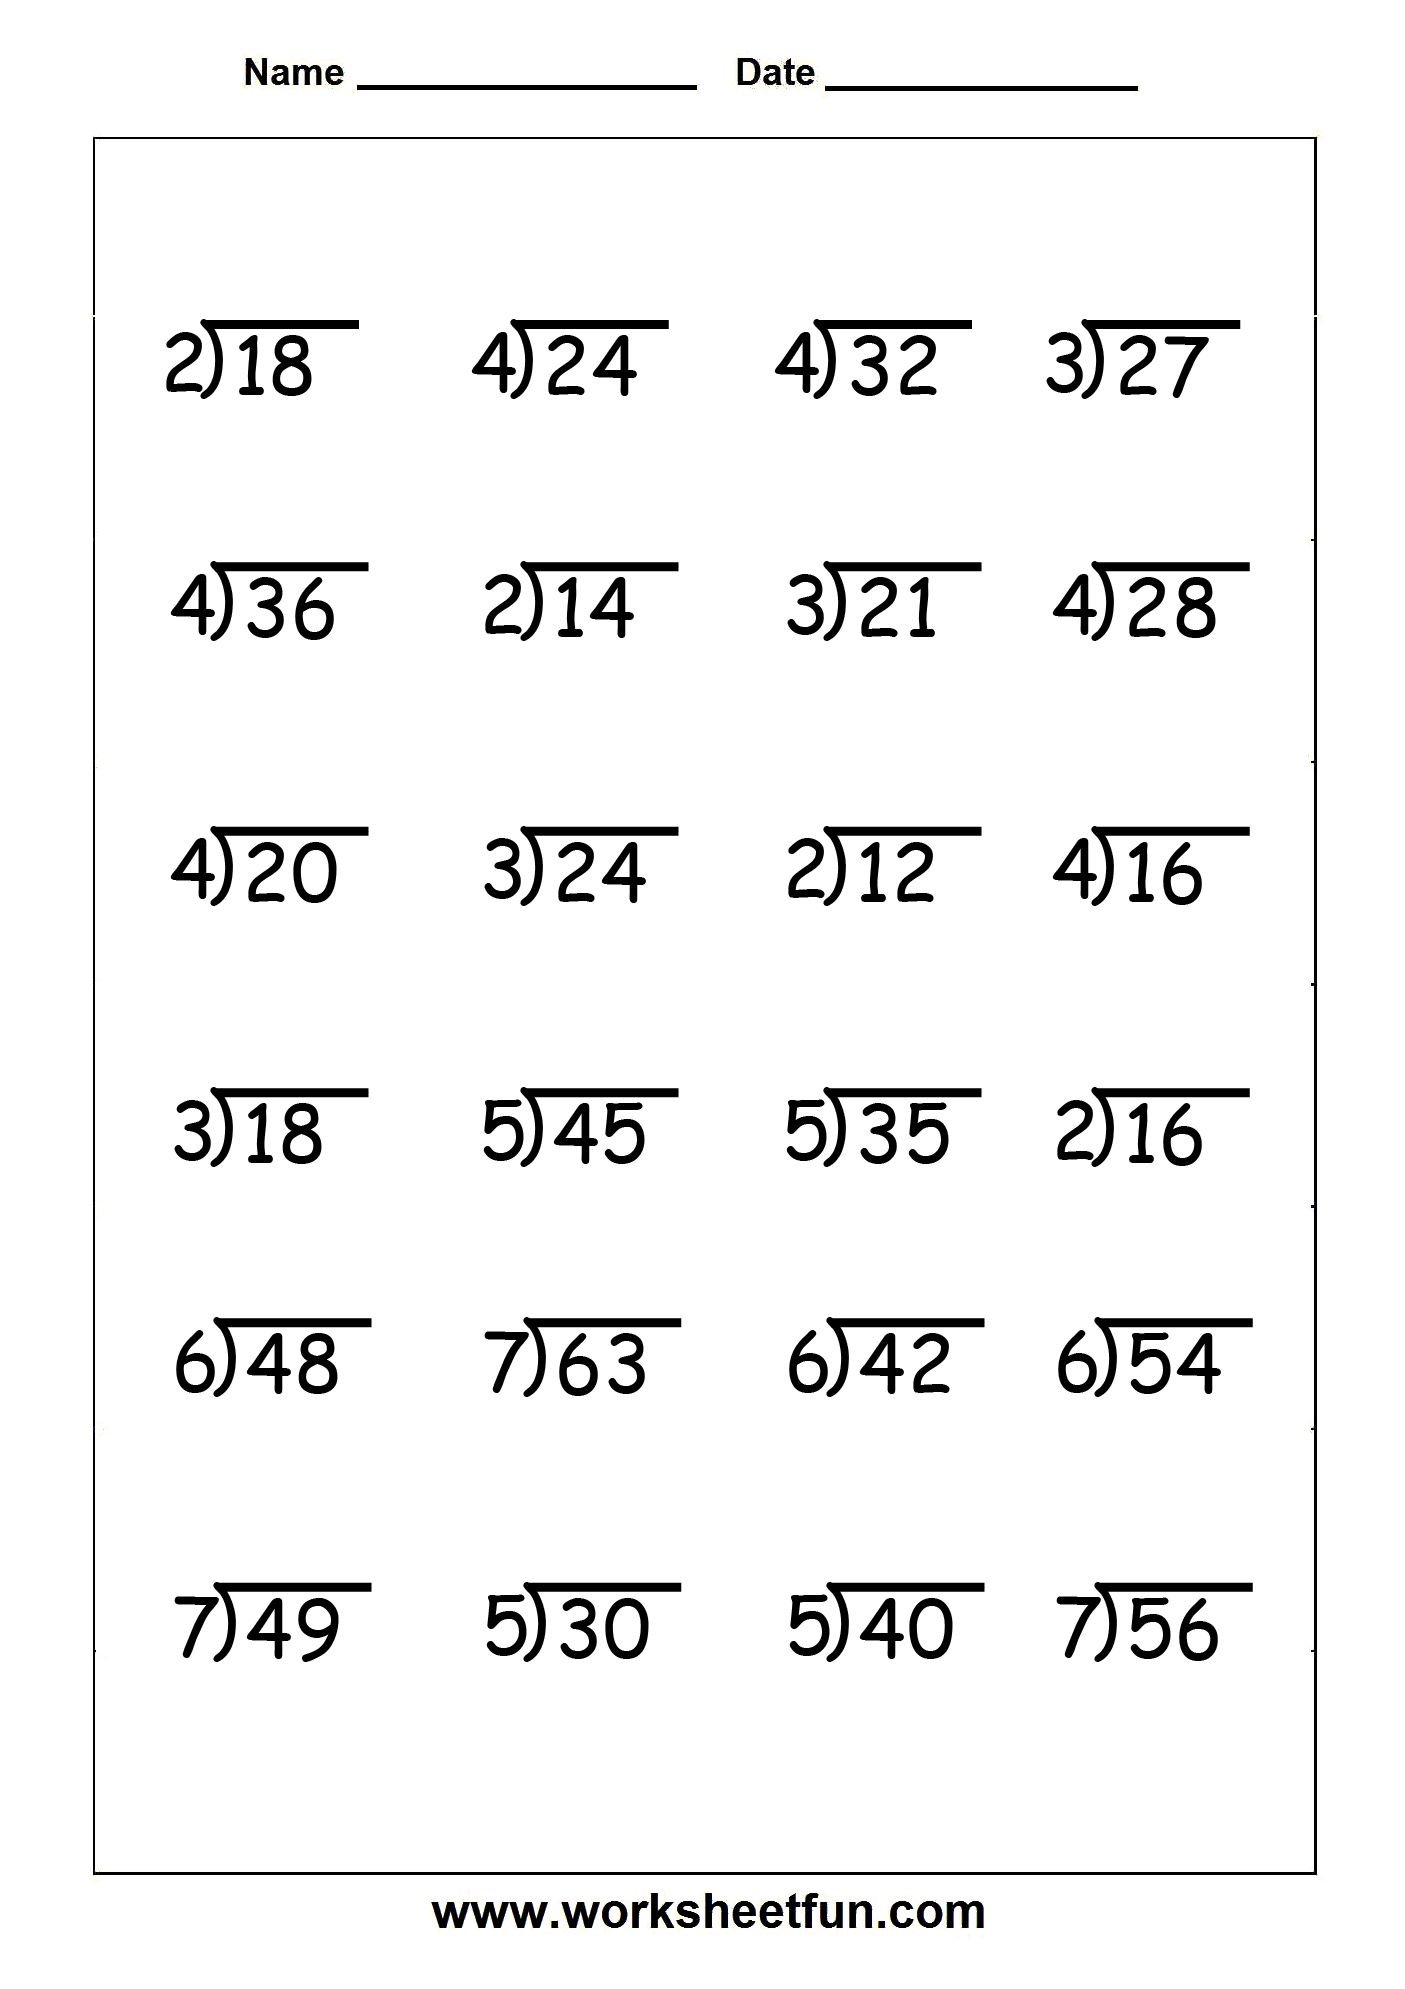 Division - 4 Worksheets | Printable Worksheets - Free Printable Division Worksheets For 4Th Grade